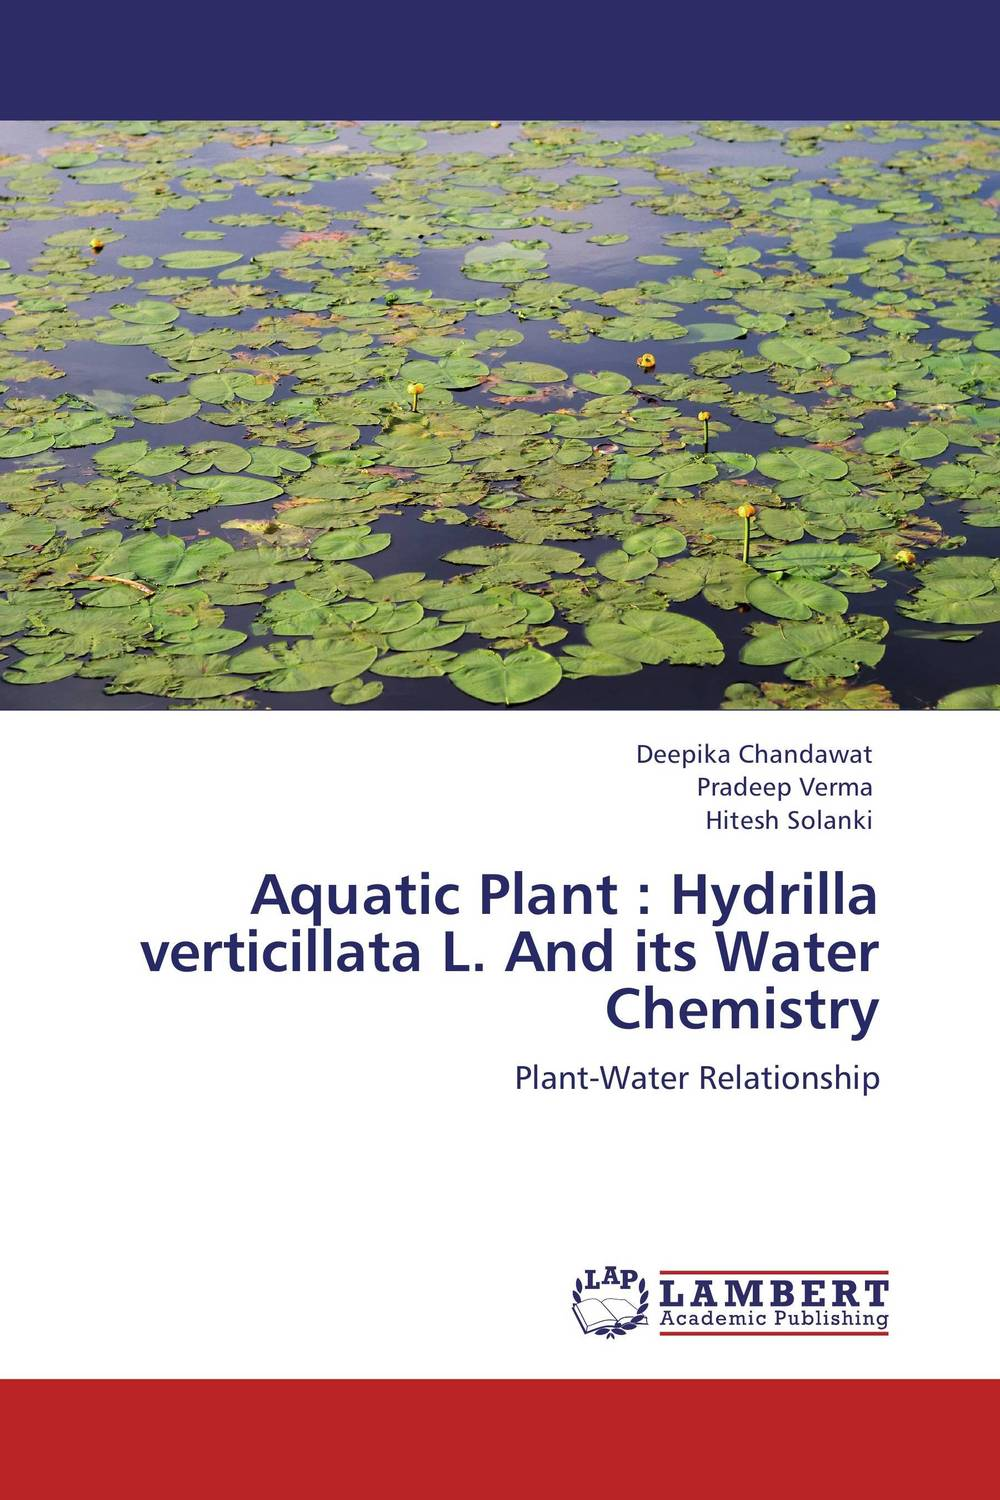 Aquatic Plant : Hydrilla verticillata L. And its Water Chemistry ornamental plant production in recycled water